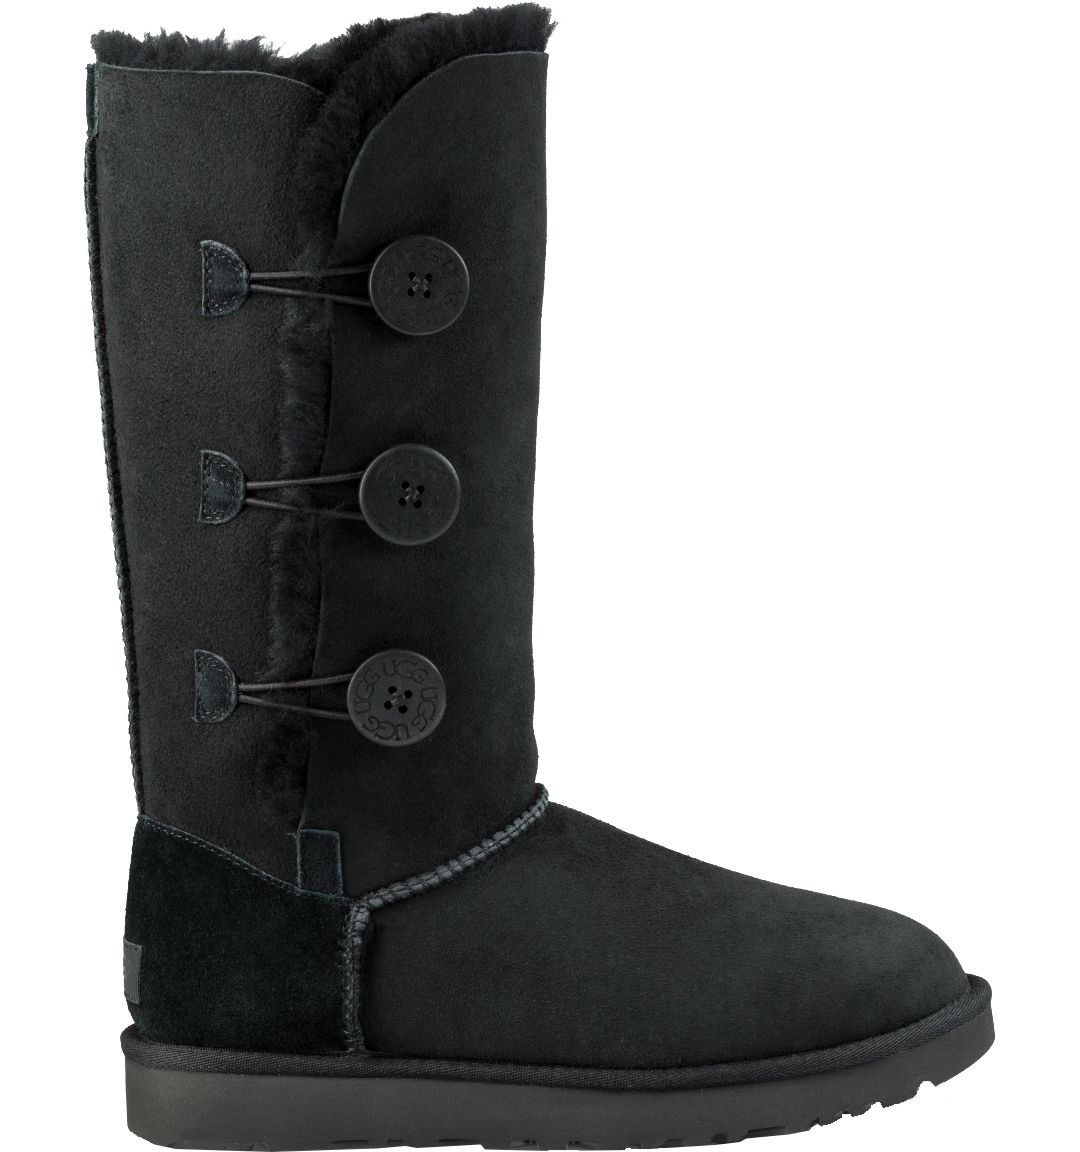 1d6d35d4262 UGG Australia Women's Bailey Button Triplet II Winter Boots